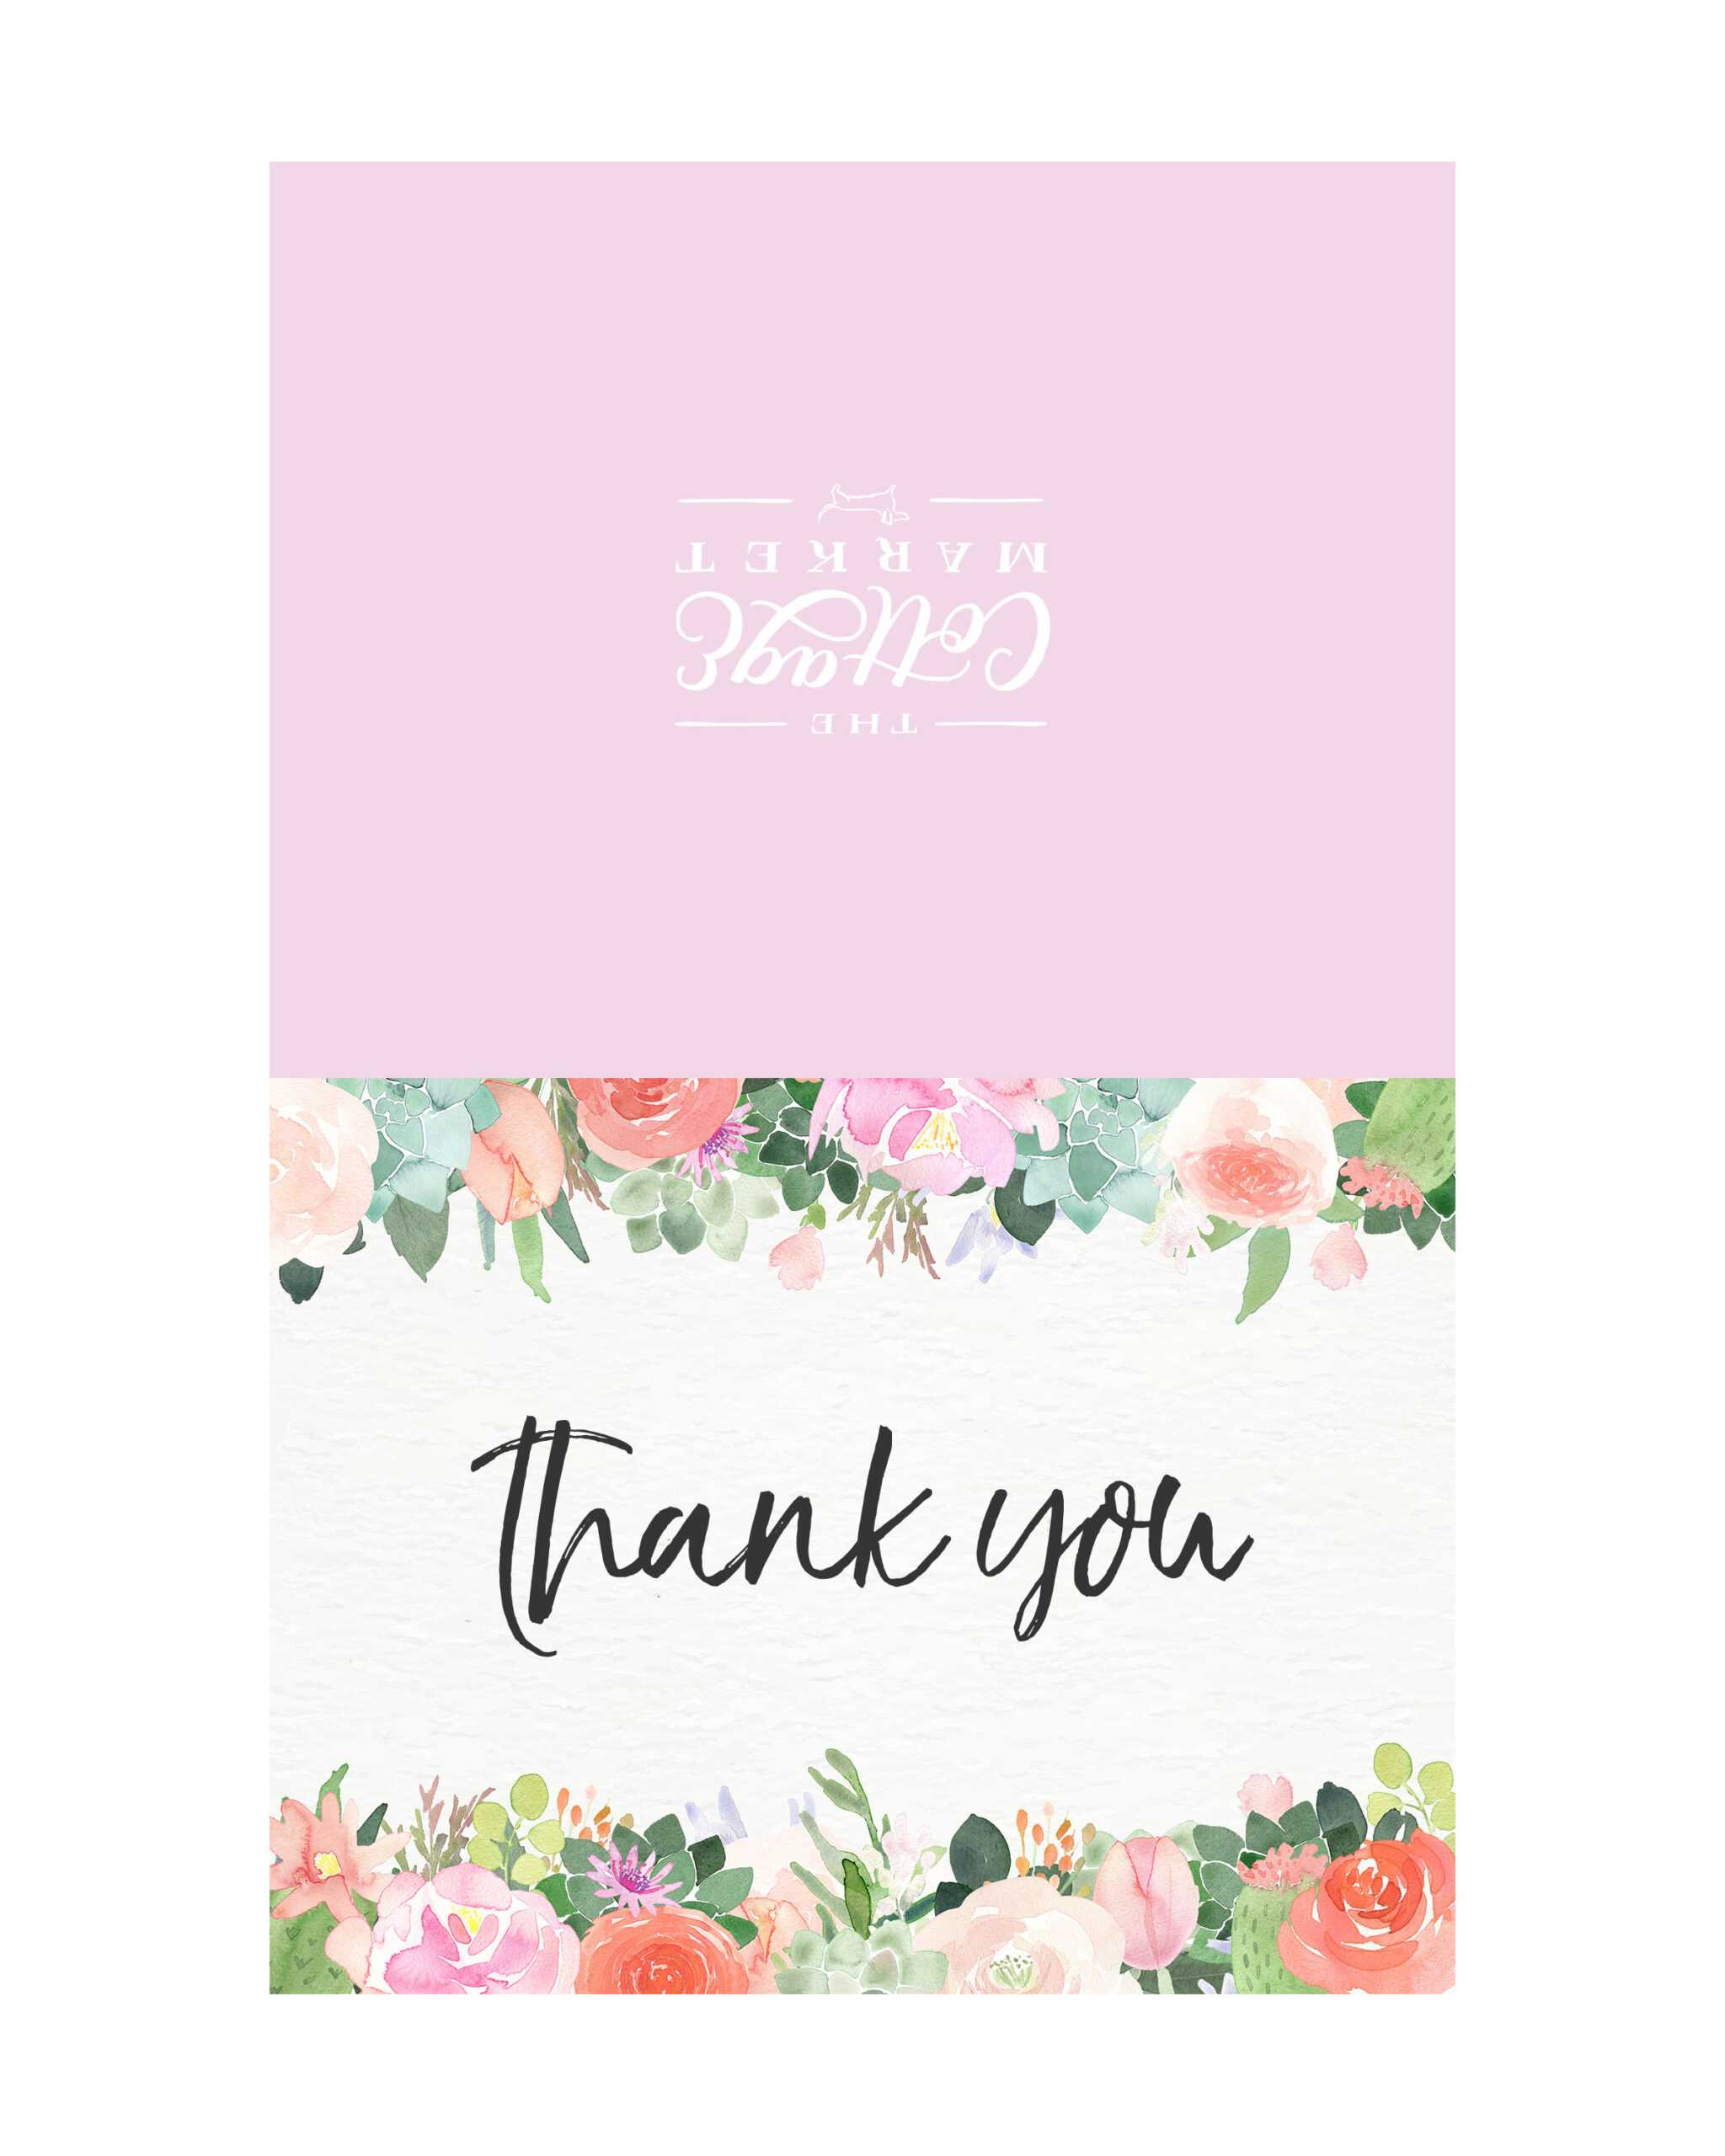 10 Free Printable Thank You Cards You Can't Miss - The Within Free Printable Thank You Card Template